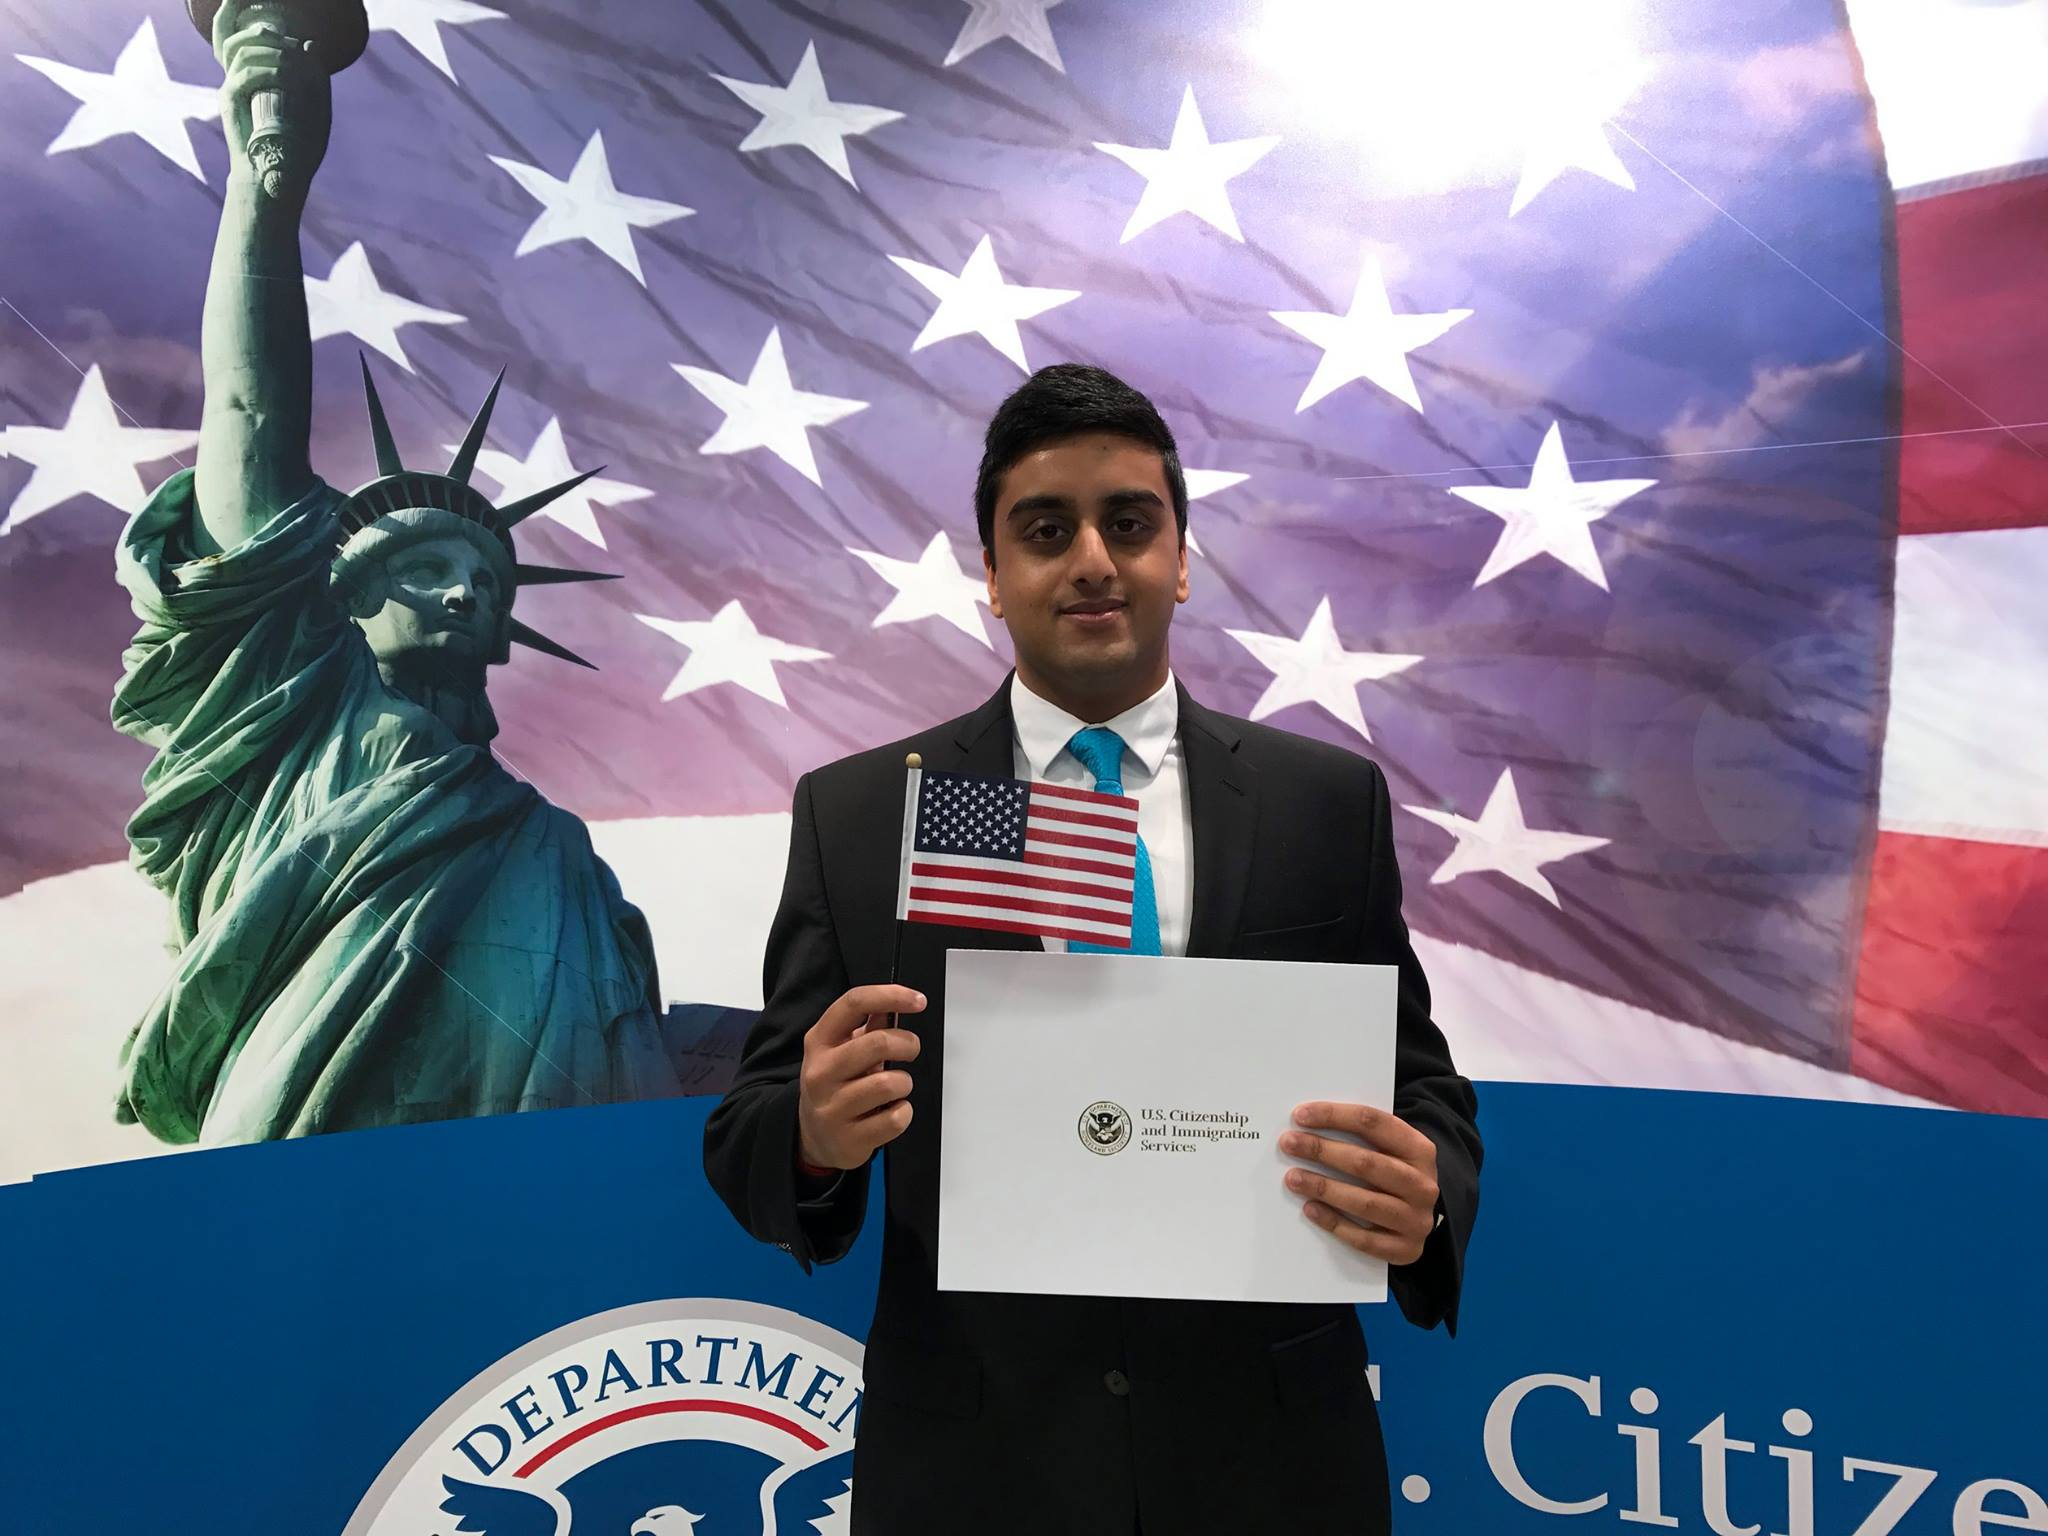 Becoming an American Citizen – My Experience